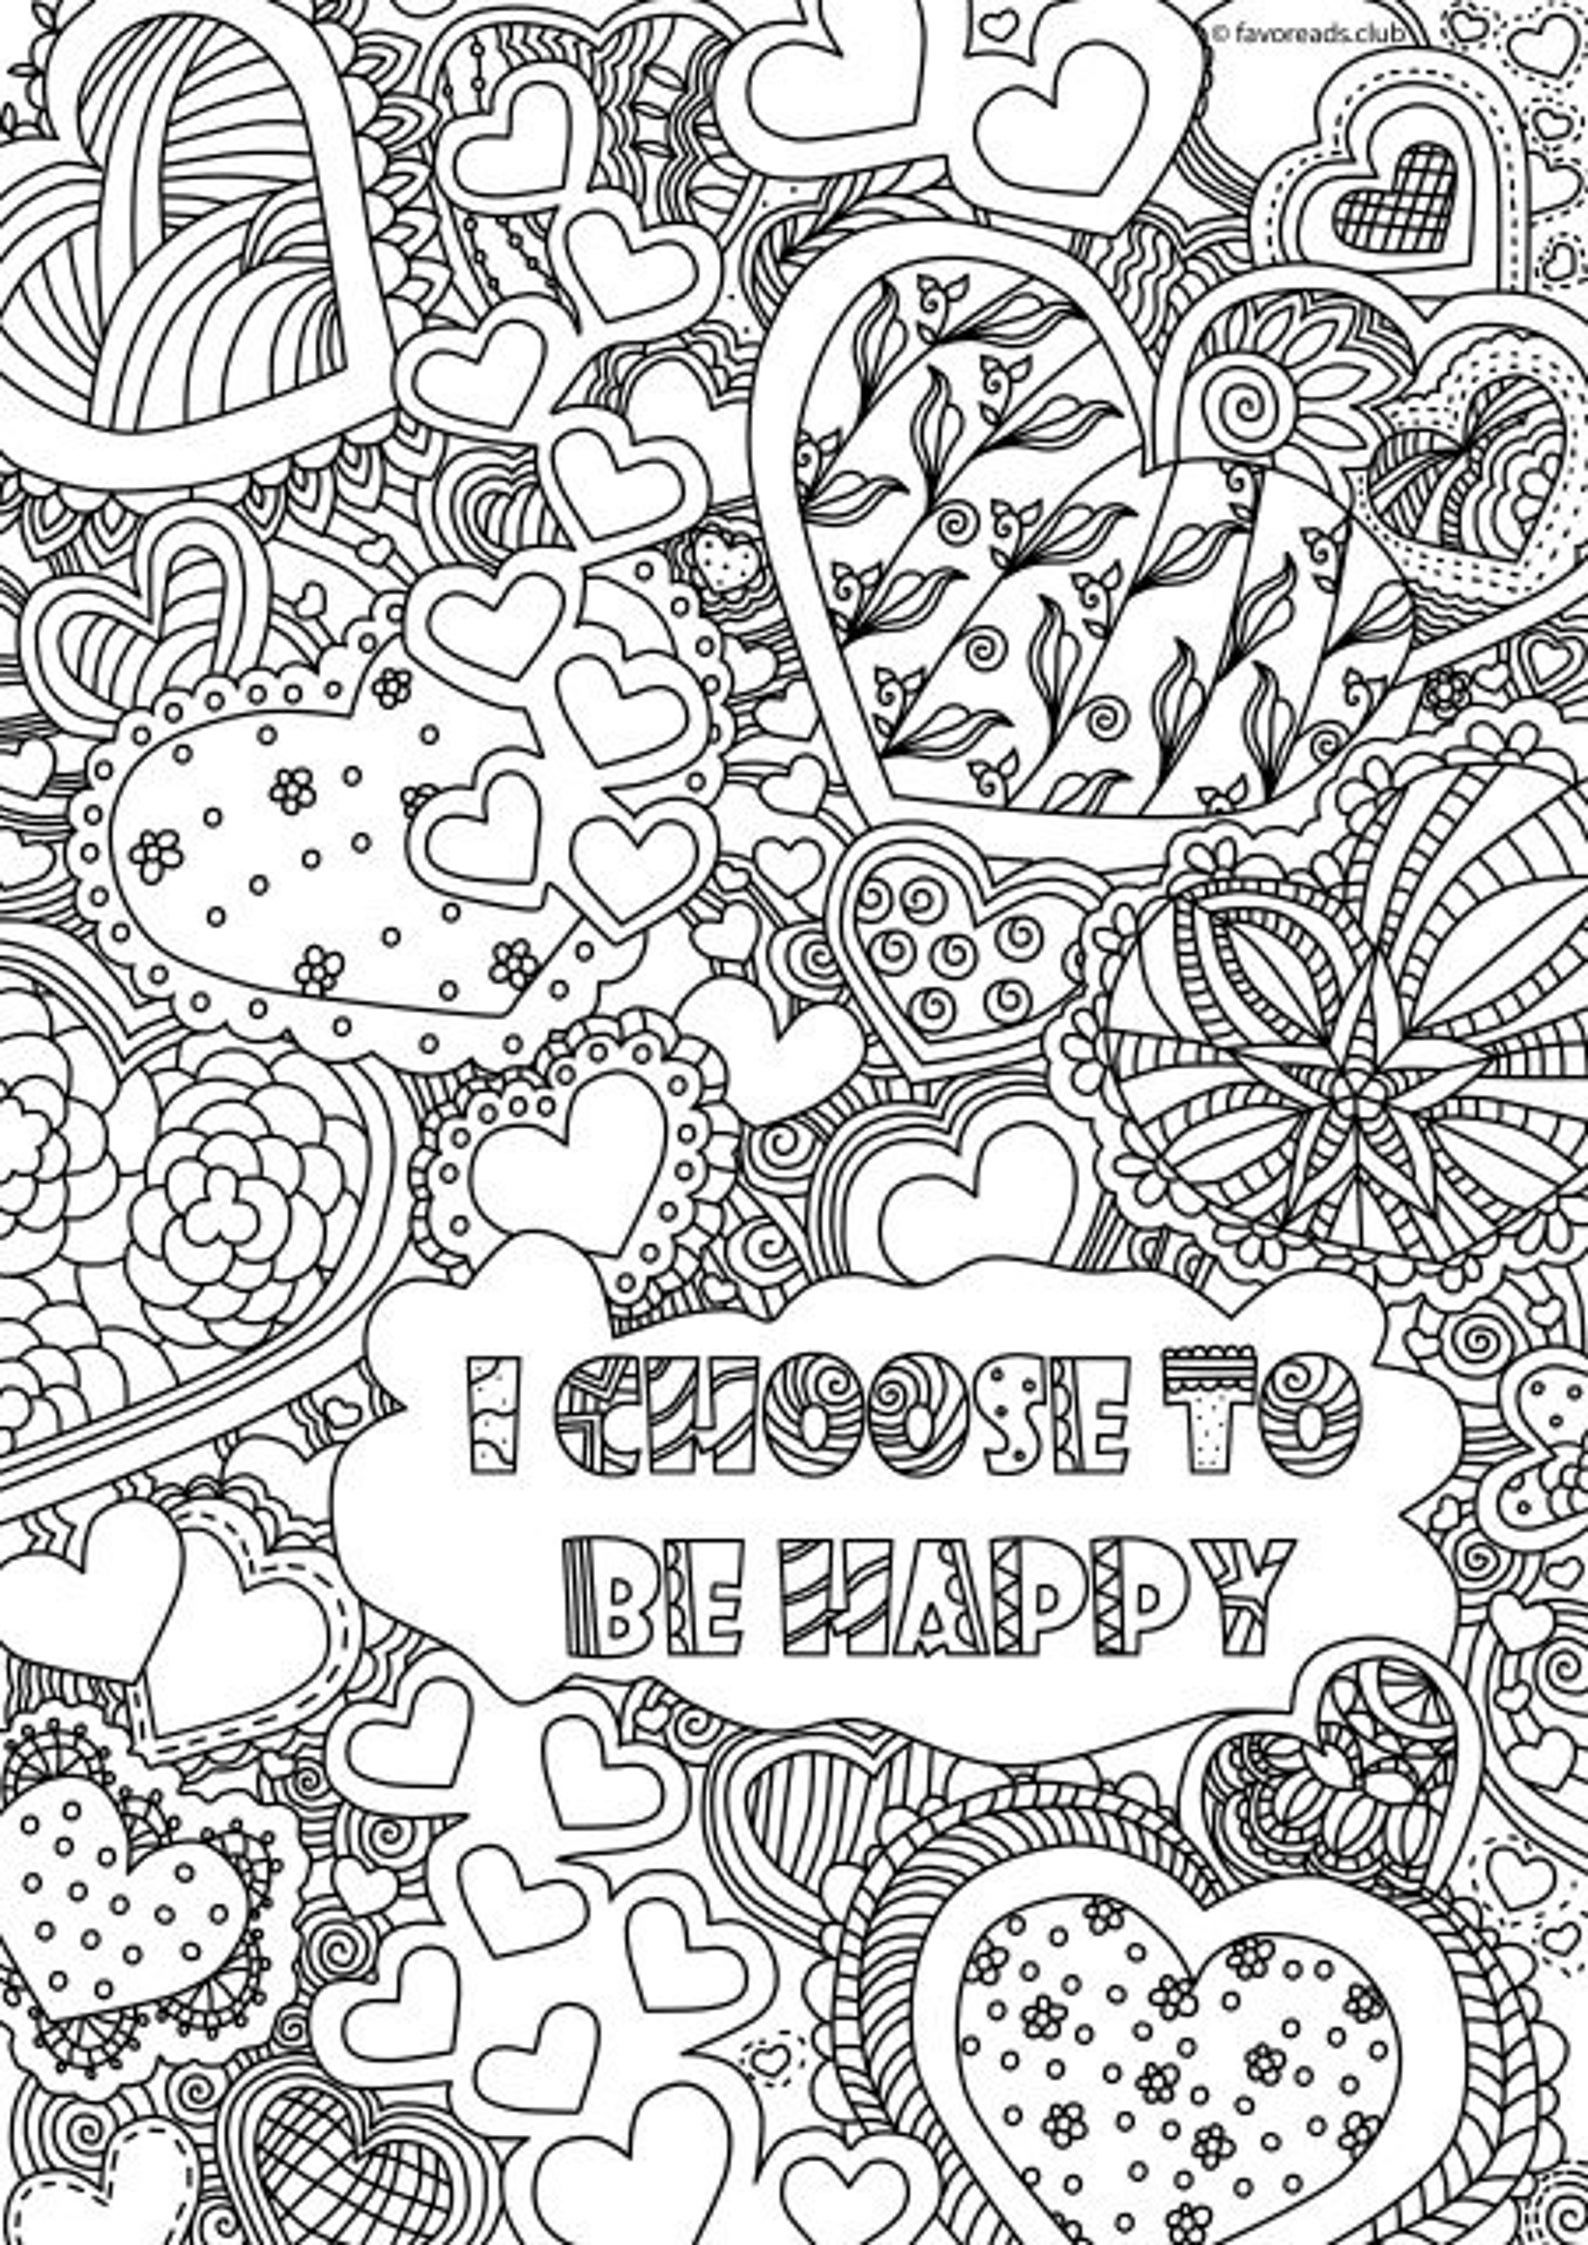 I Choose To Be Happy Printable Adult Coloring Page From